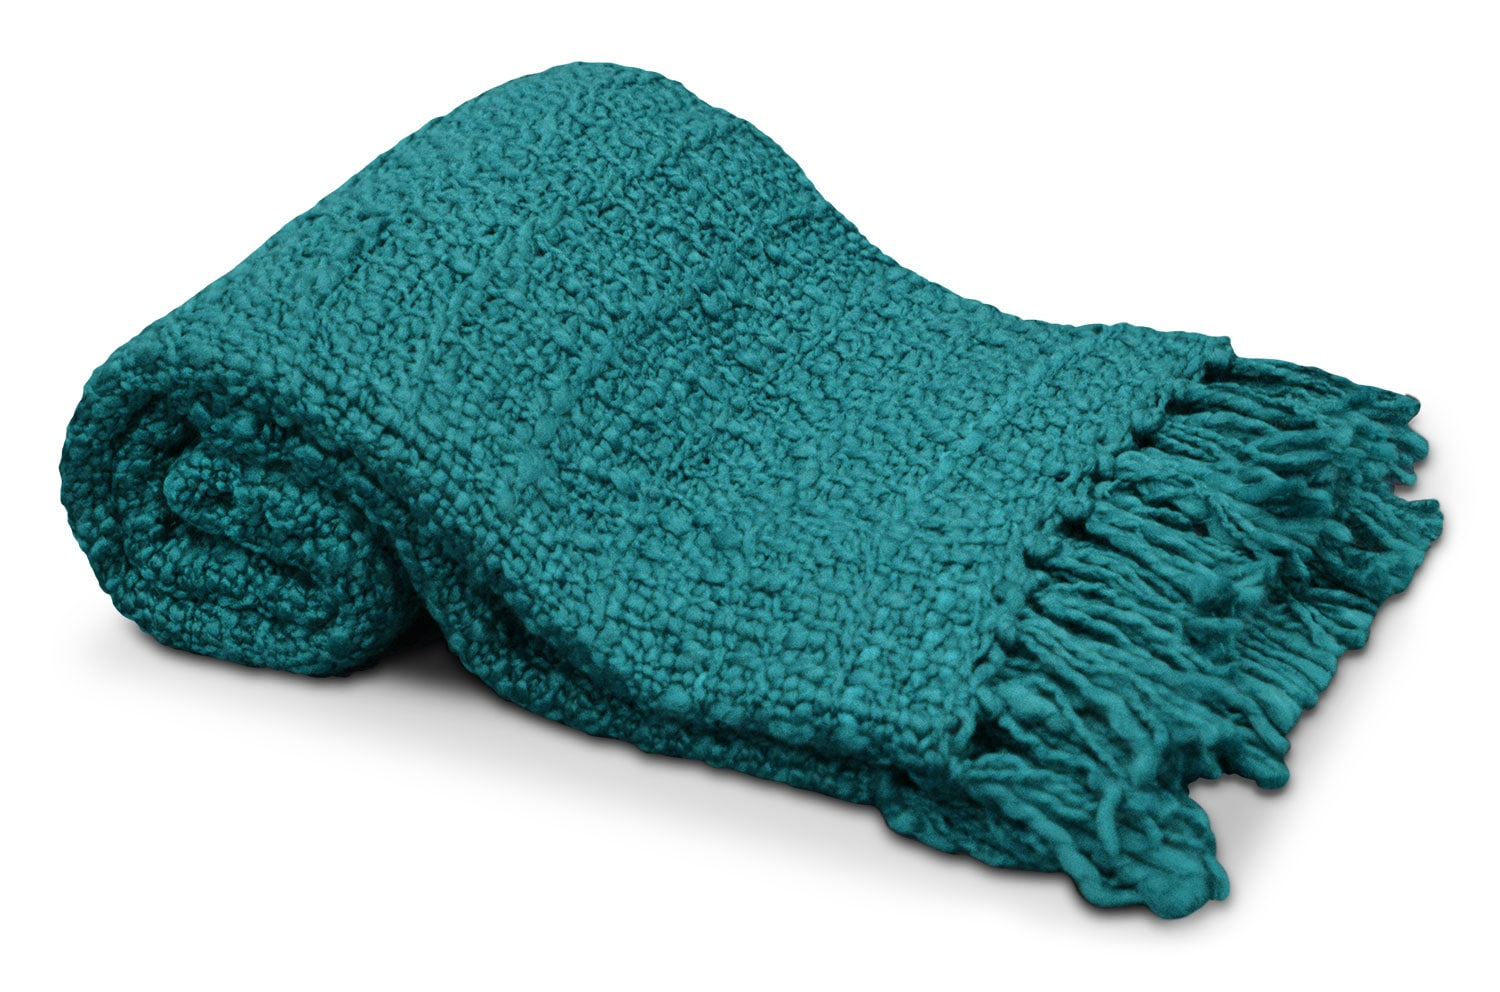 Knit Throw with Tassels – Teal